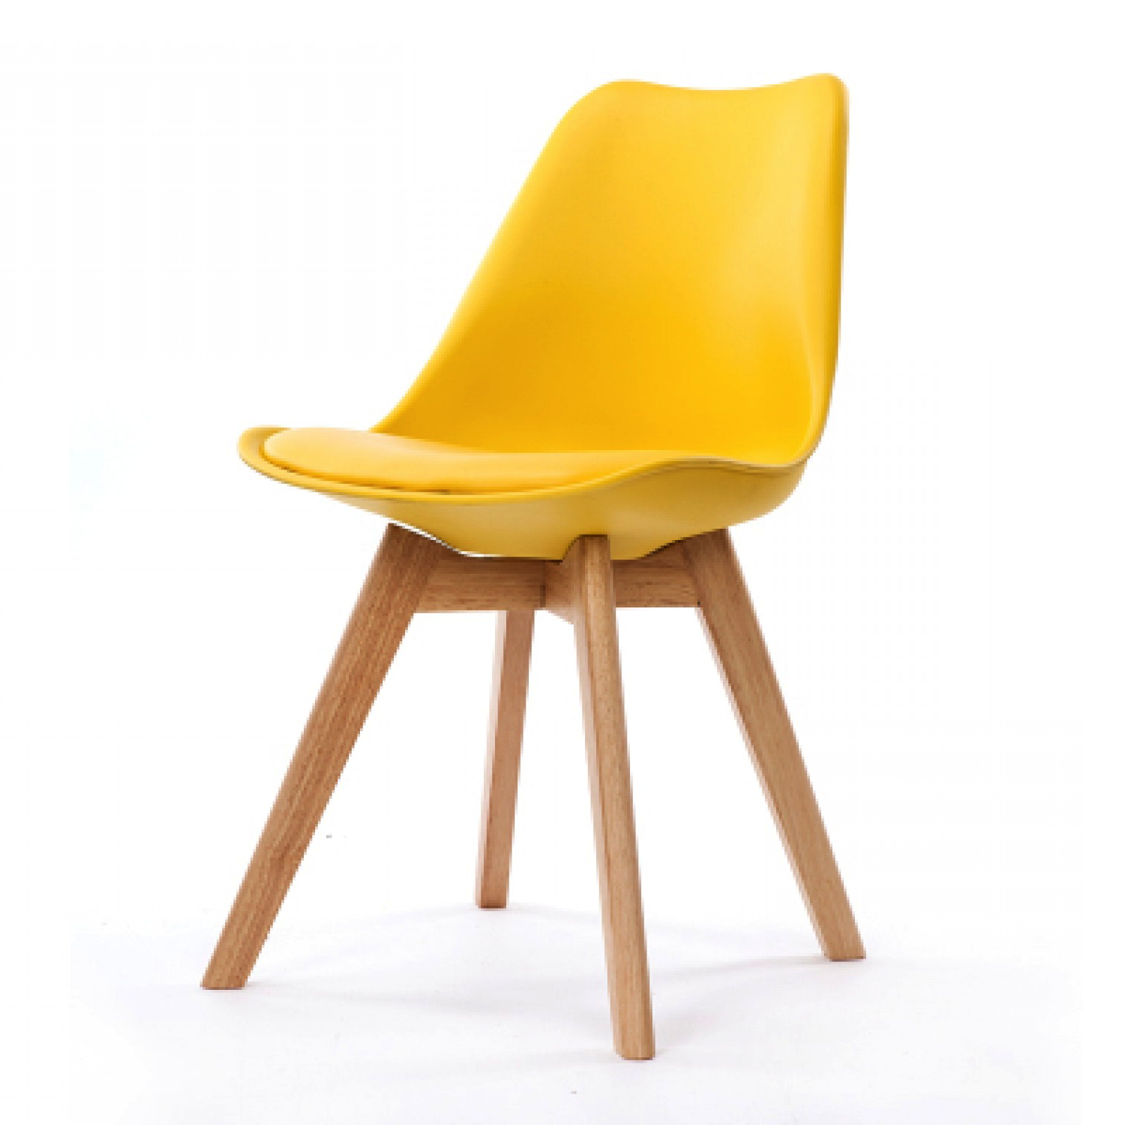 Chaise Scandinave Couleur Chaise Scandinave Jaune Kotecaz Fr Chaise Design Chaise Scandinave Chaise Style Scandinave